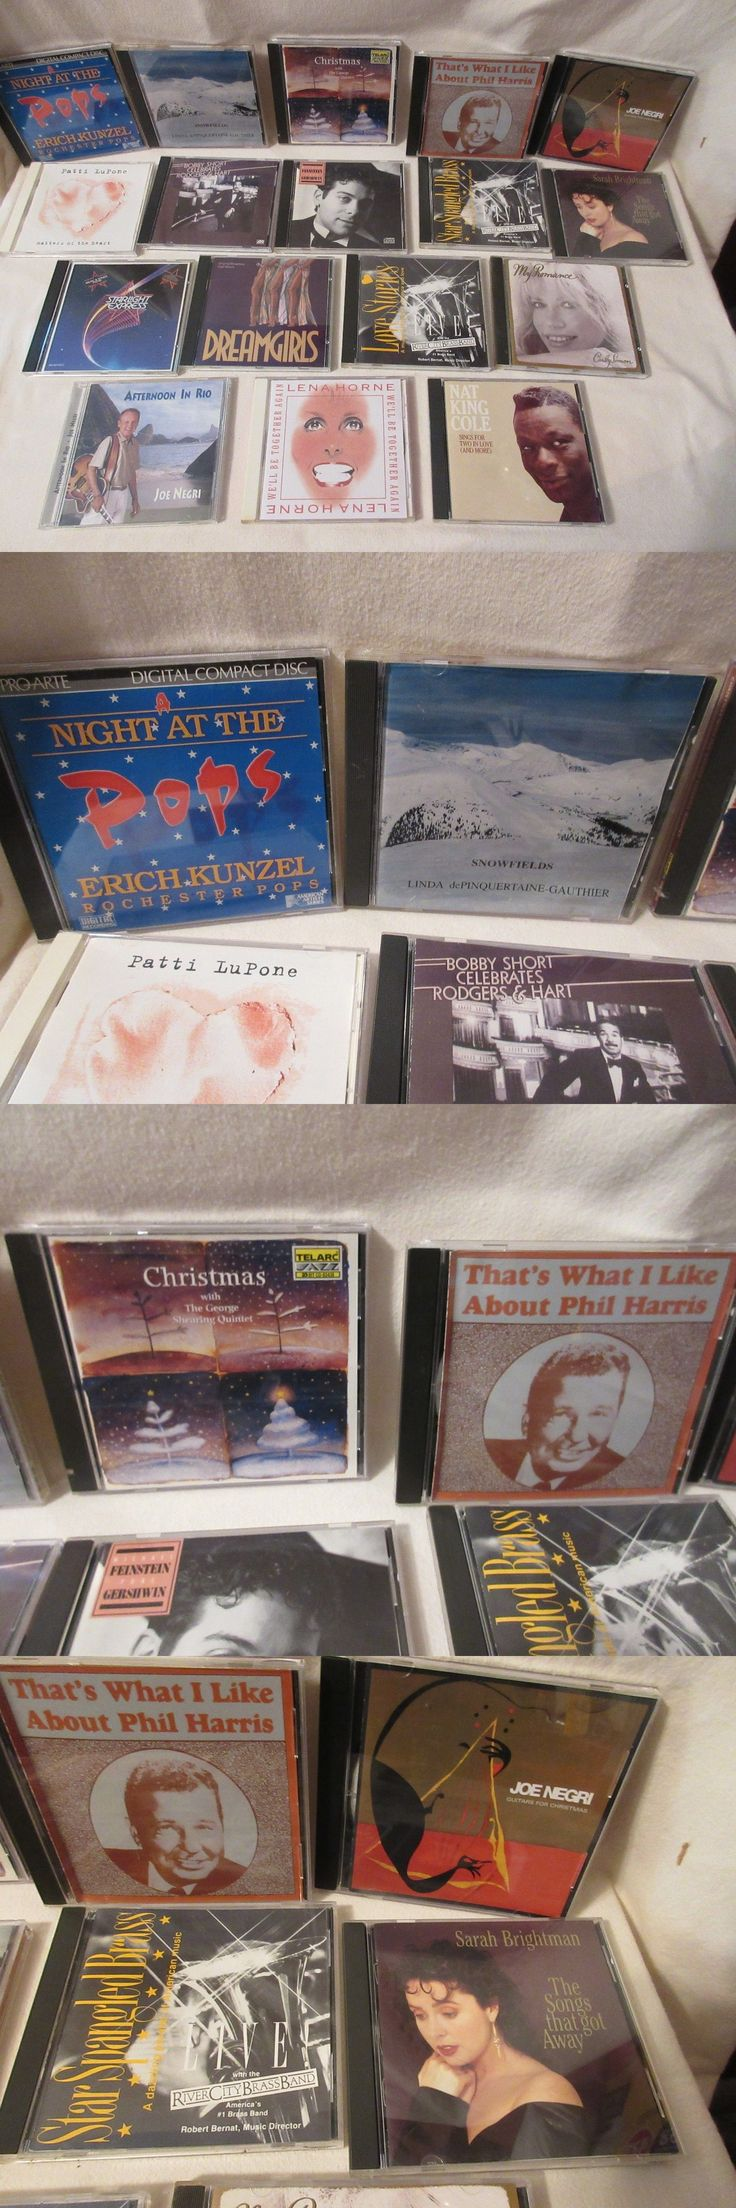 Christmas Songs And Album: Lot Of 17 Mixed Music Cds Nat King Cole, Christmas, Brass Band More Clean Nr -> BUY IT NOW ONLY: $0.99 on eBay!